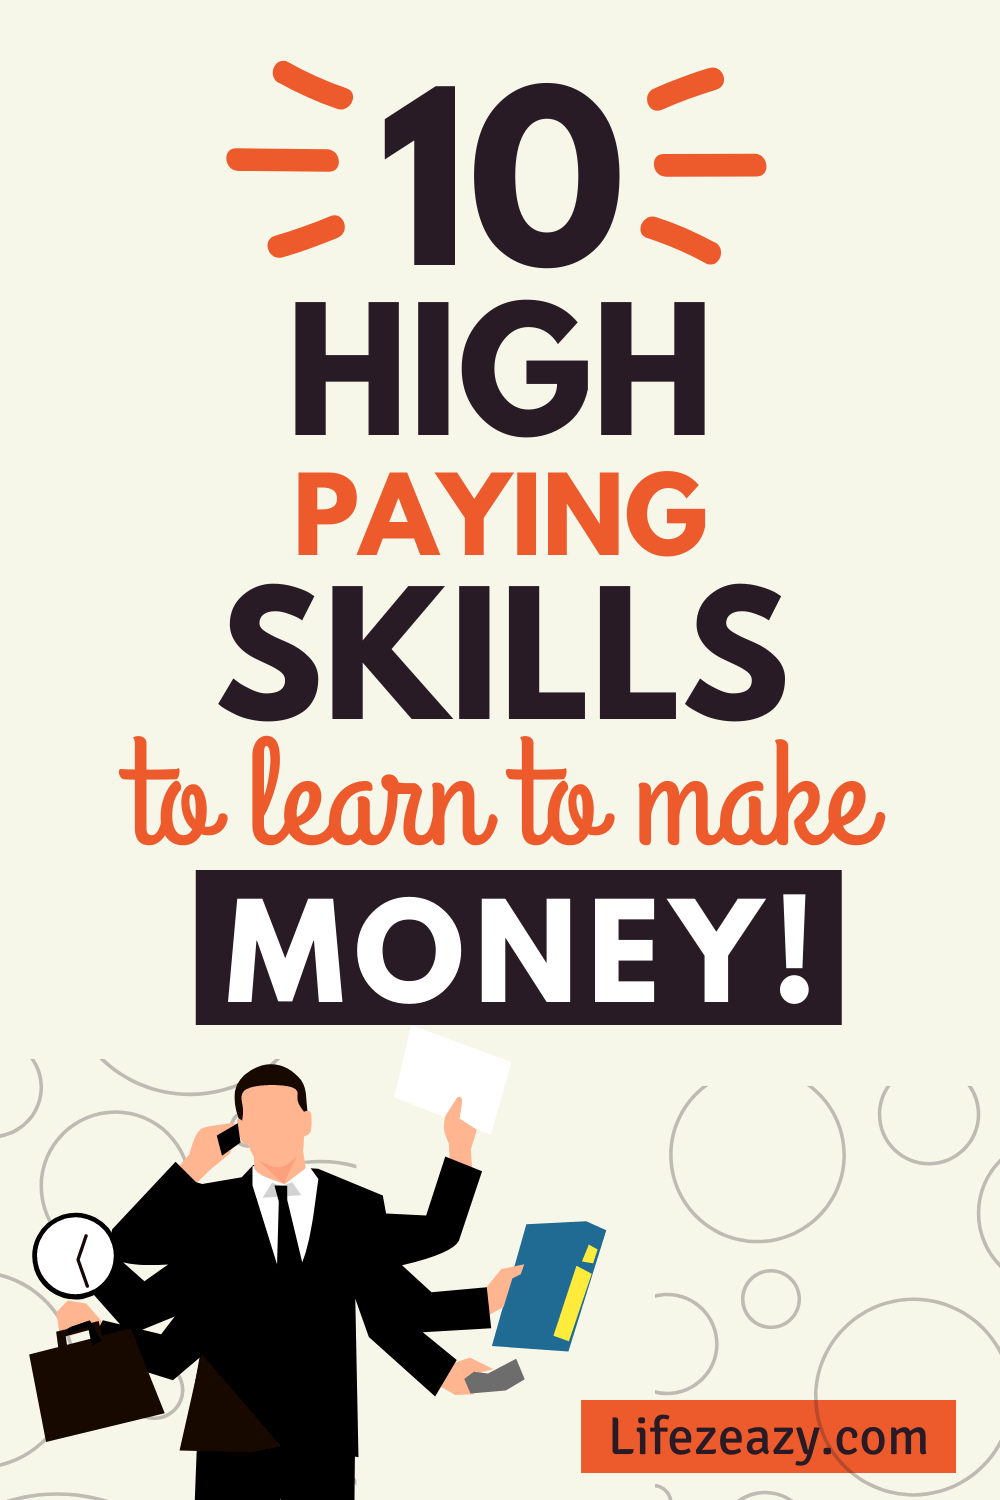 Skills to learn to make money